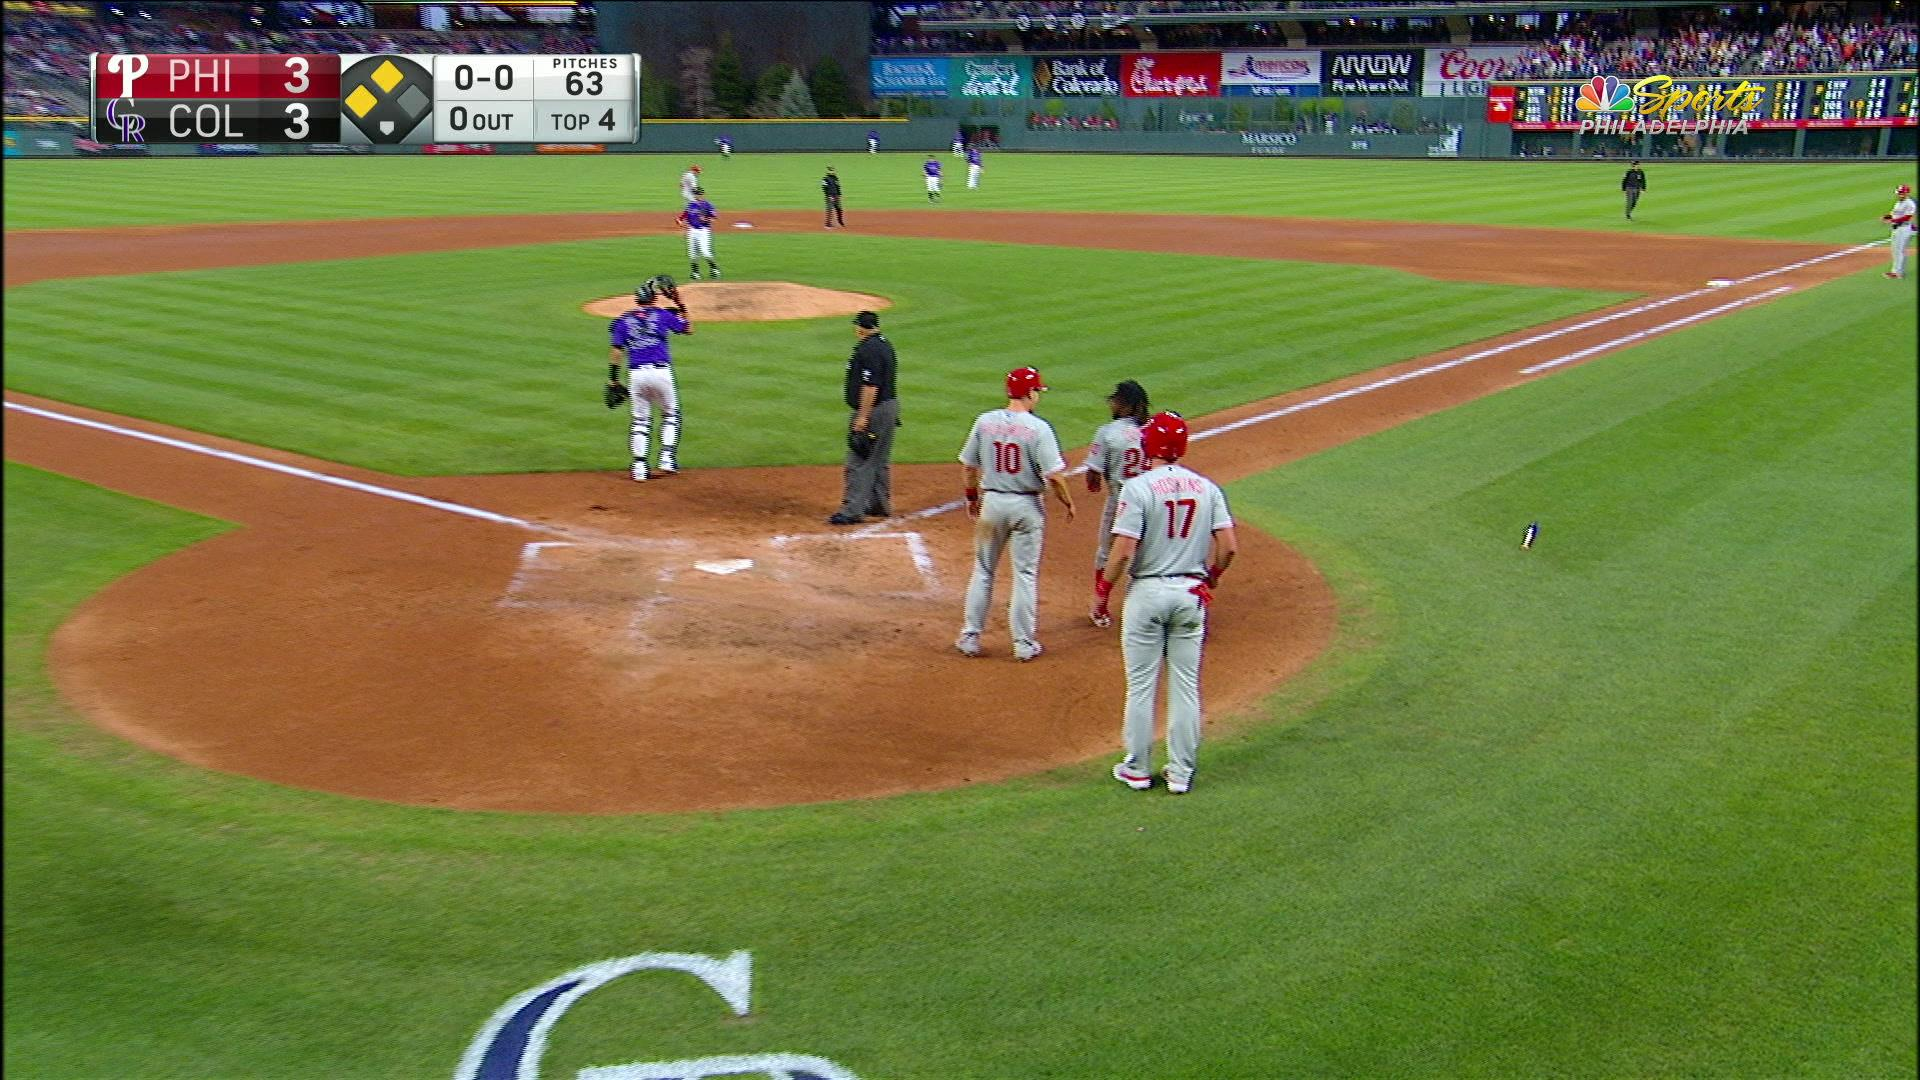 West Chester's own, Phil Gosselin, clears the bases